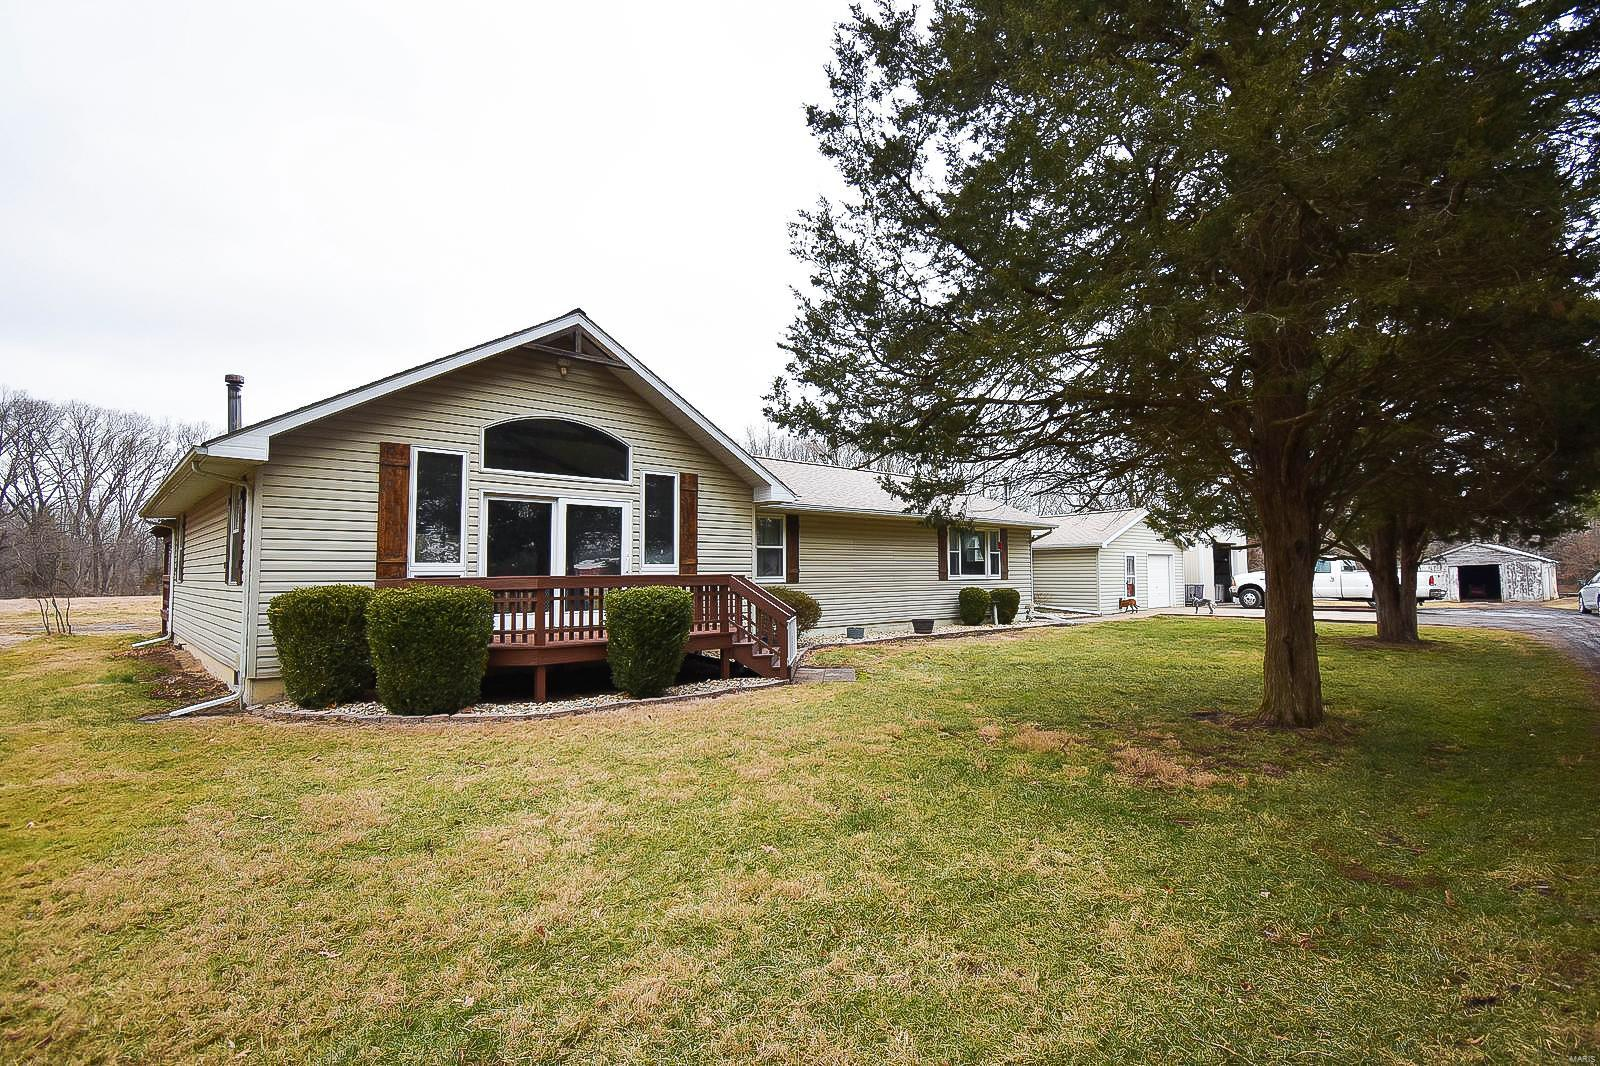 126 Arrowhead Trail Property Photo - Litchfield, IL real estate listing